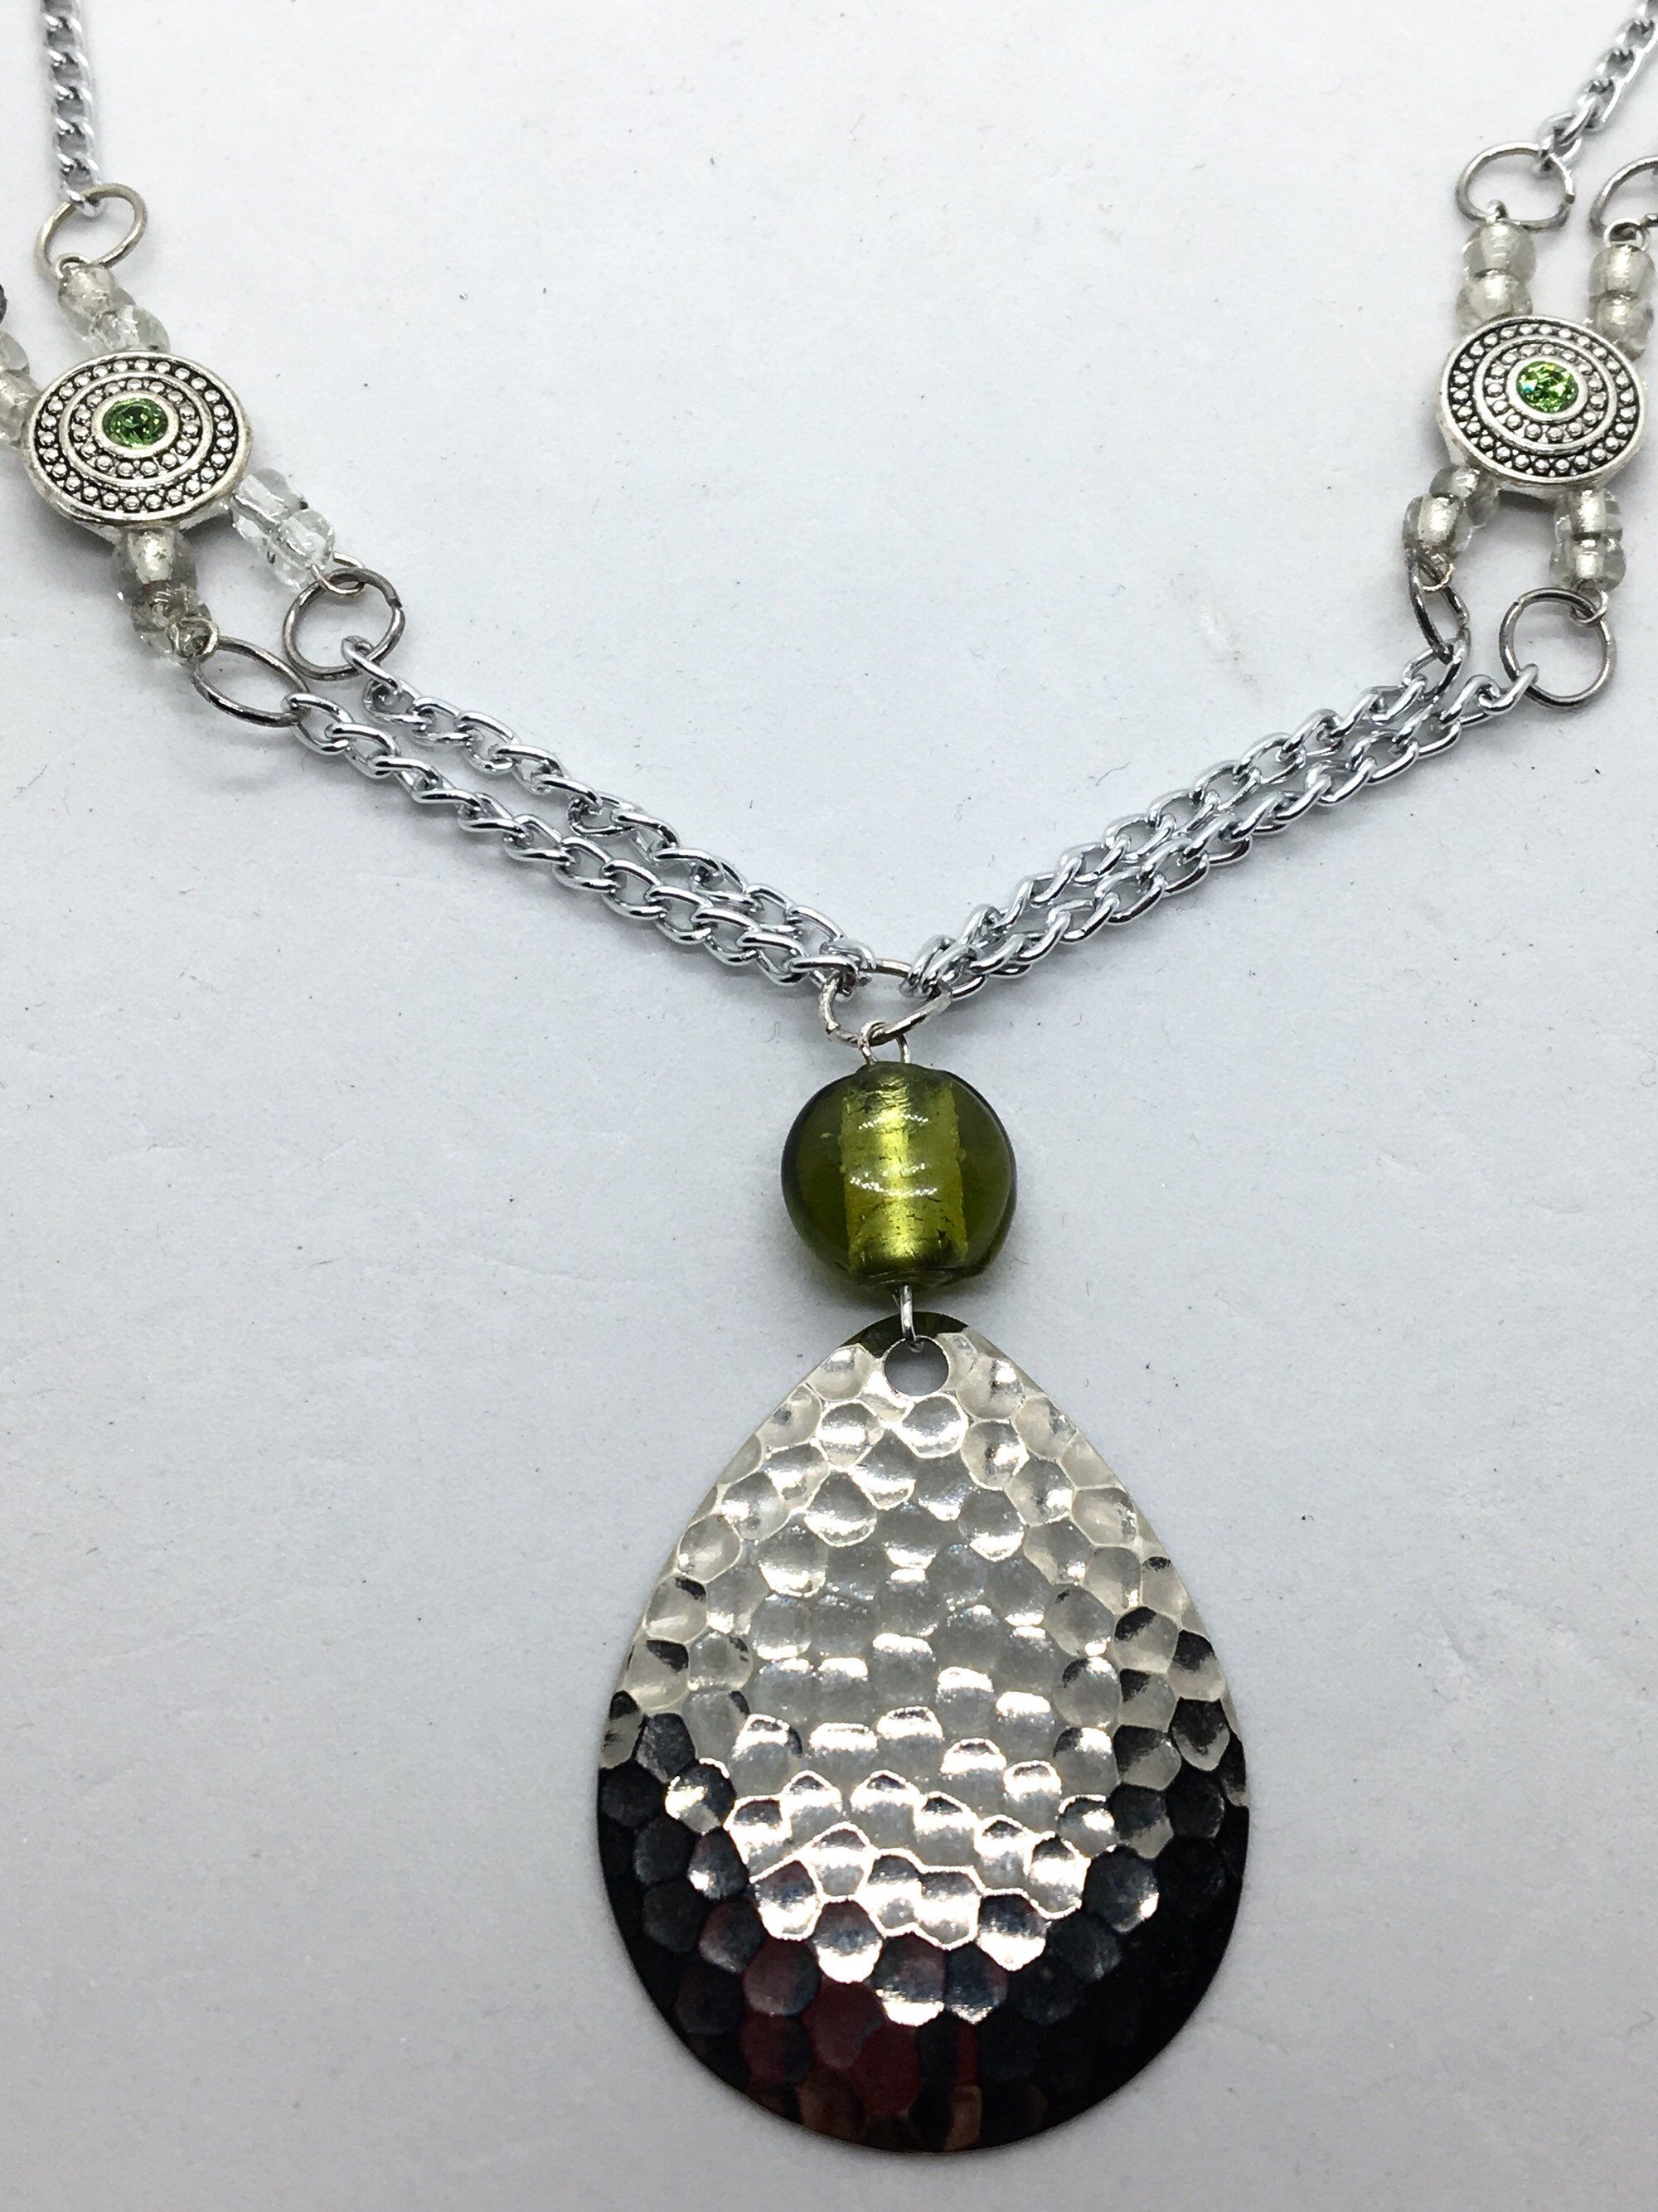 Green Bead Multi Chain Fishing Lure Necklace Jewelry